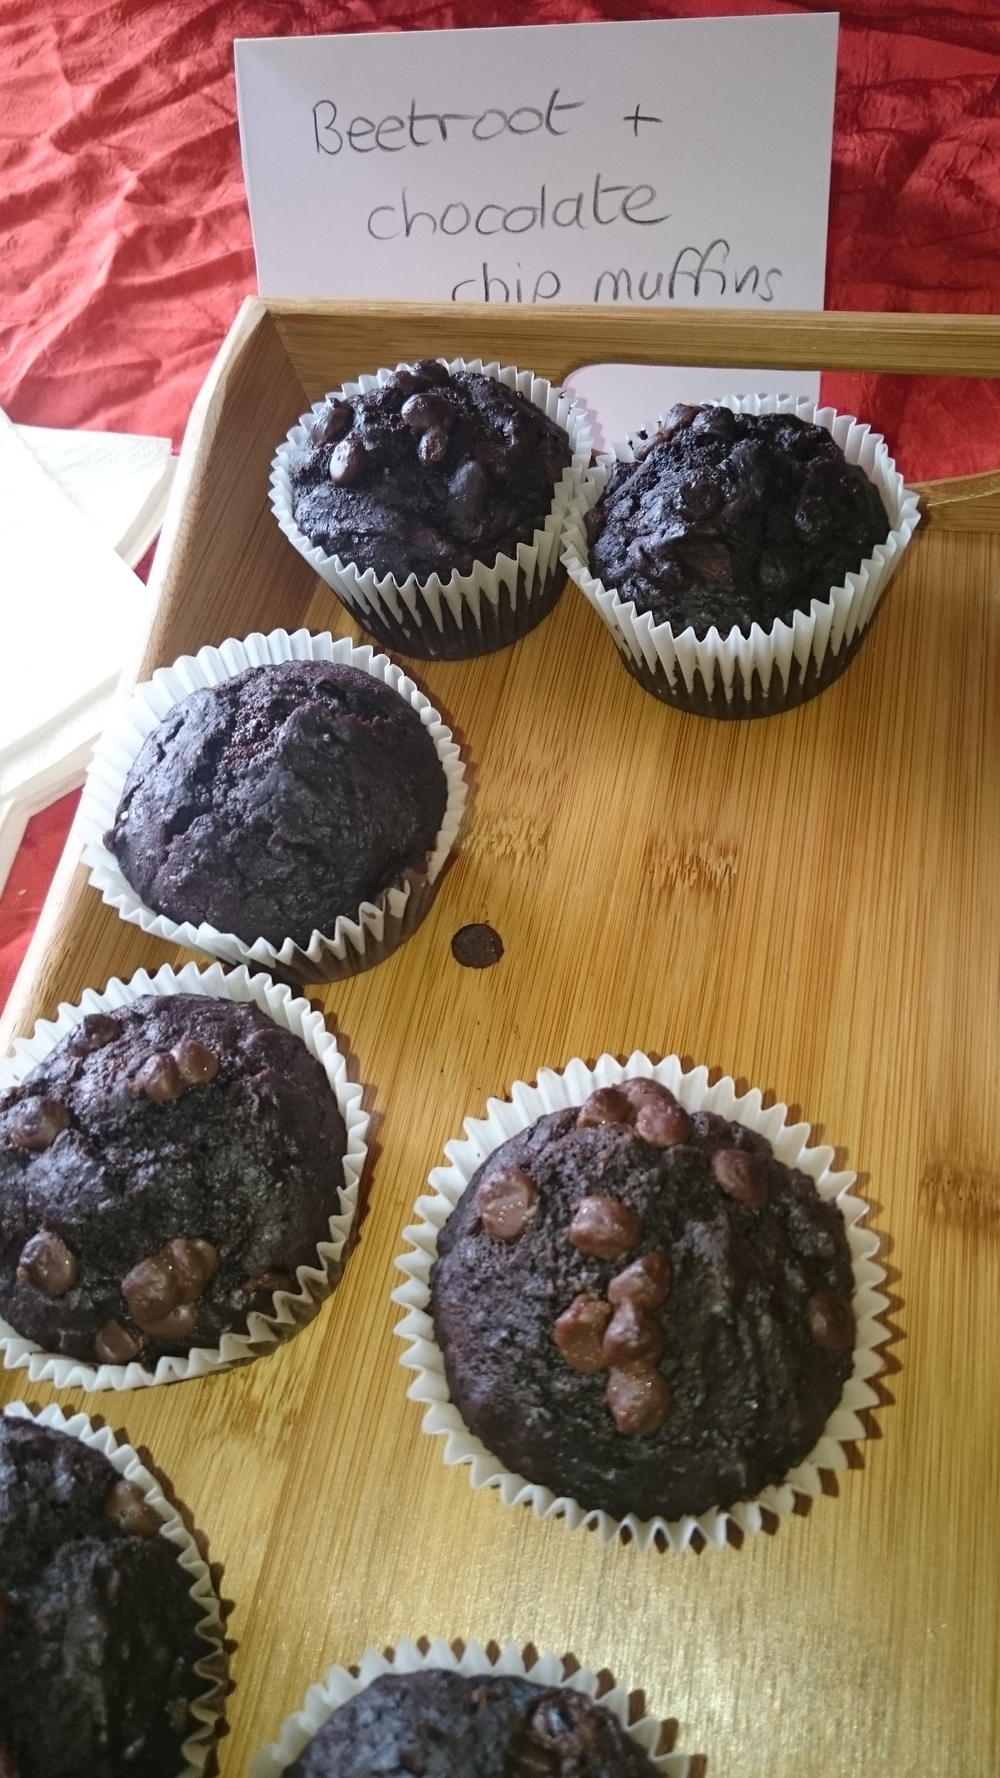 lff-recipe-beetroot-choc-muffin.jpg